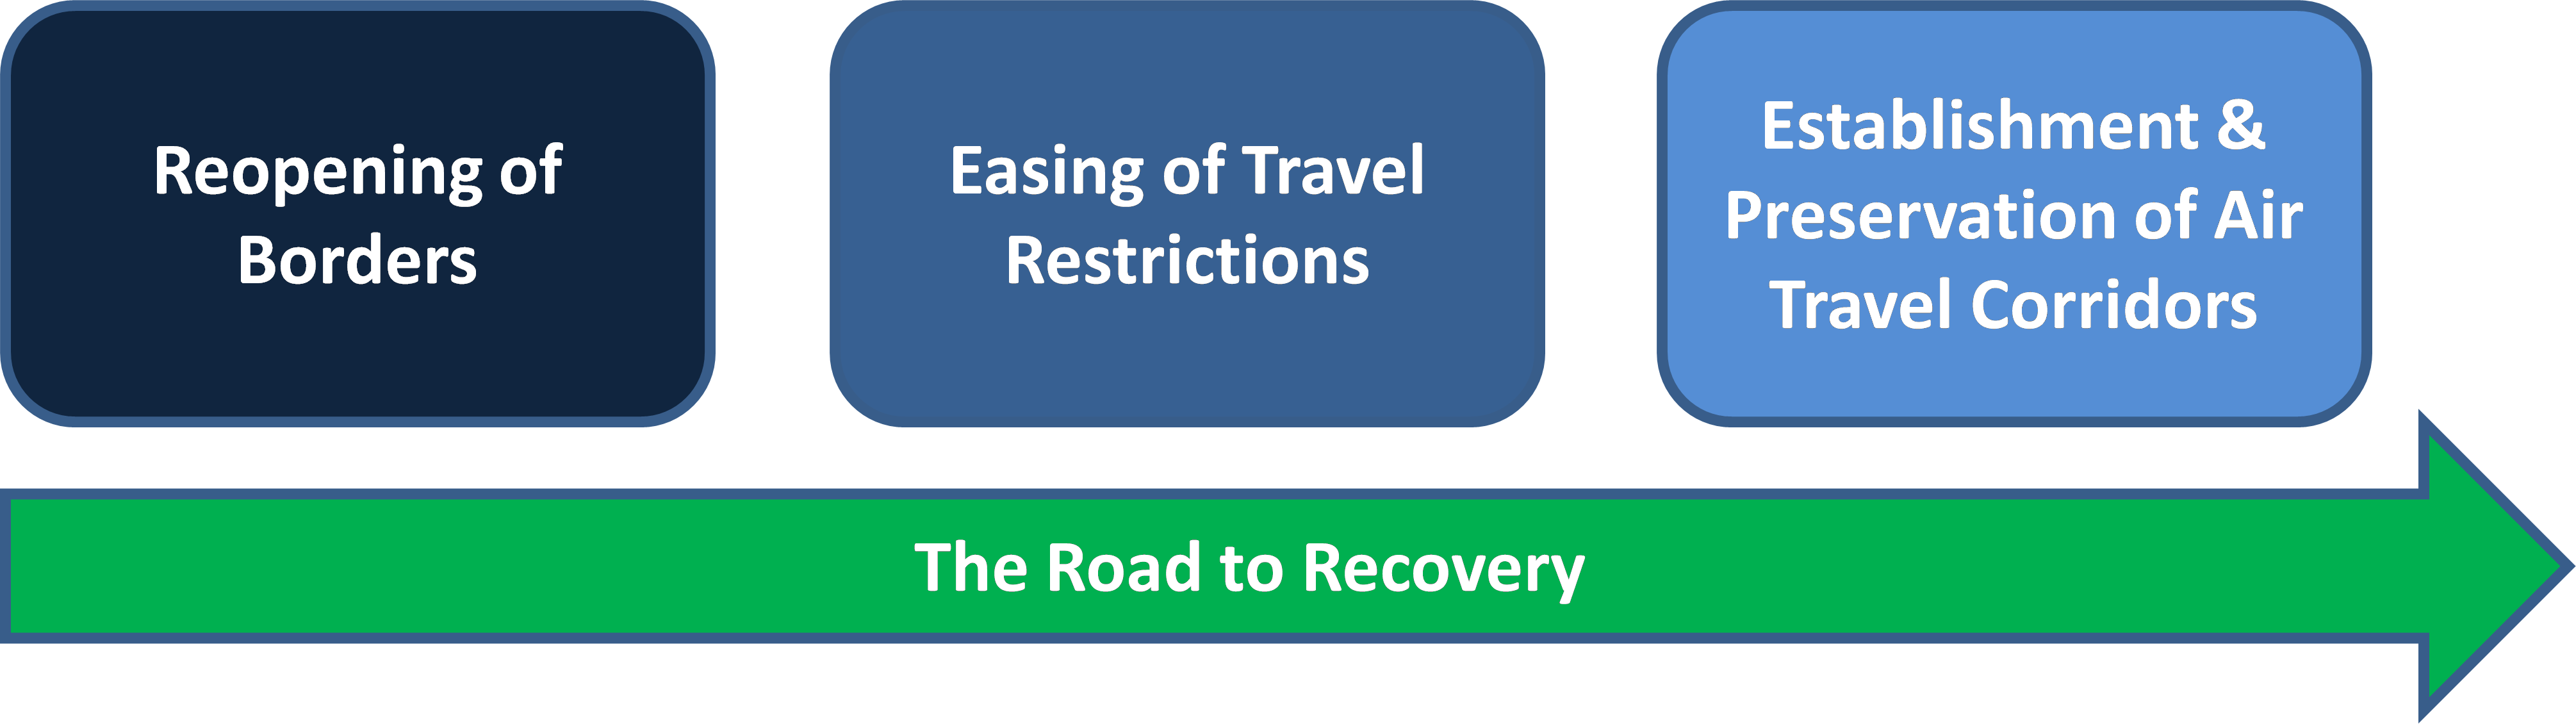 Road to Recovery Airlines